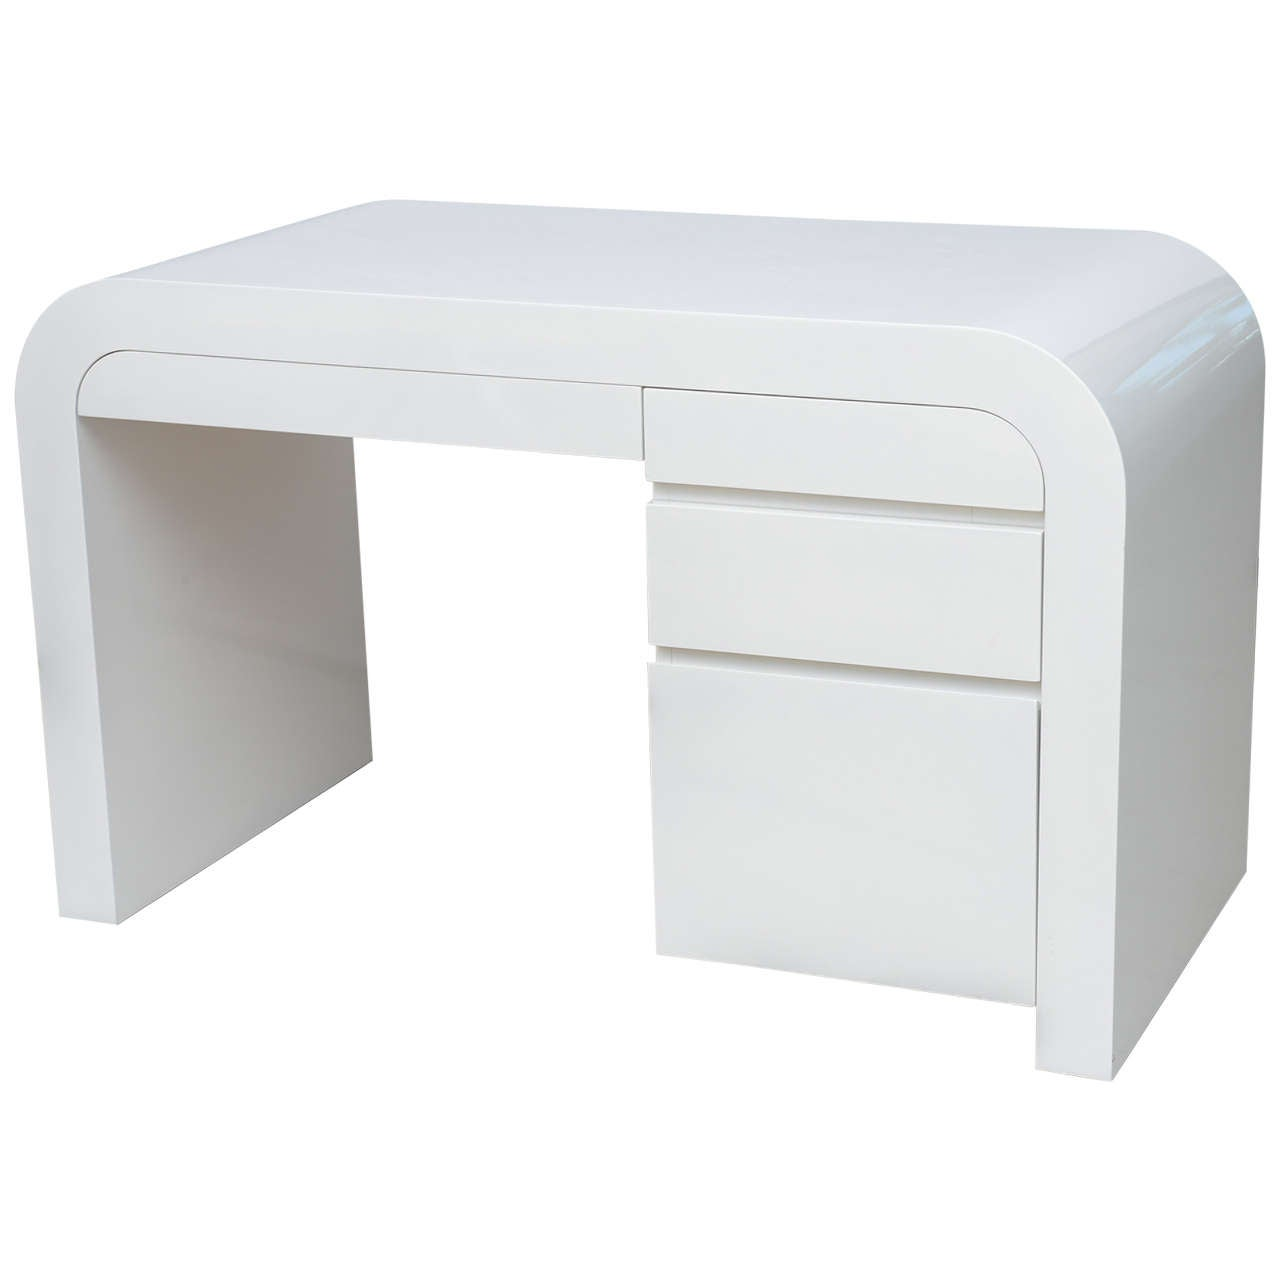 Exceptional Mid Century Modern White Lacquer Desk At 1stdibs